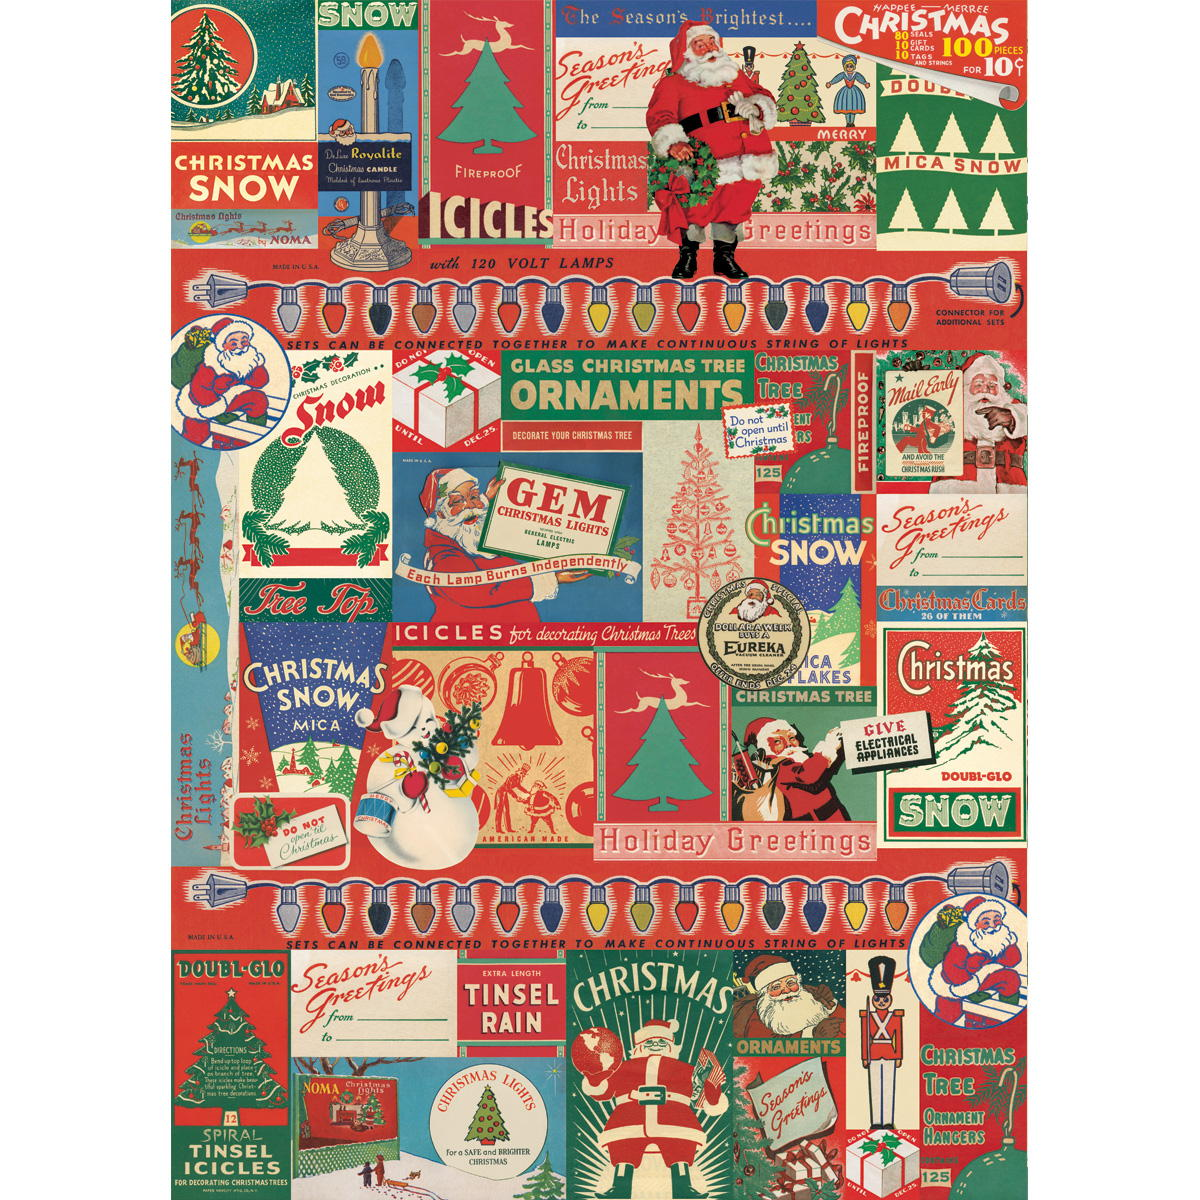 Retro Christmas.Retro Christmas Decoration Ads Crafting Mod Podge Gift Wrap